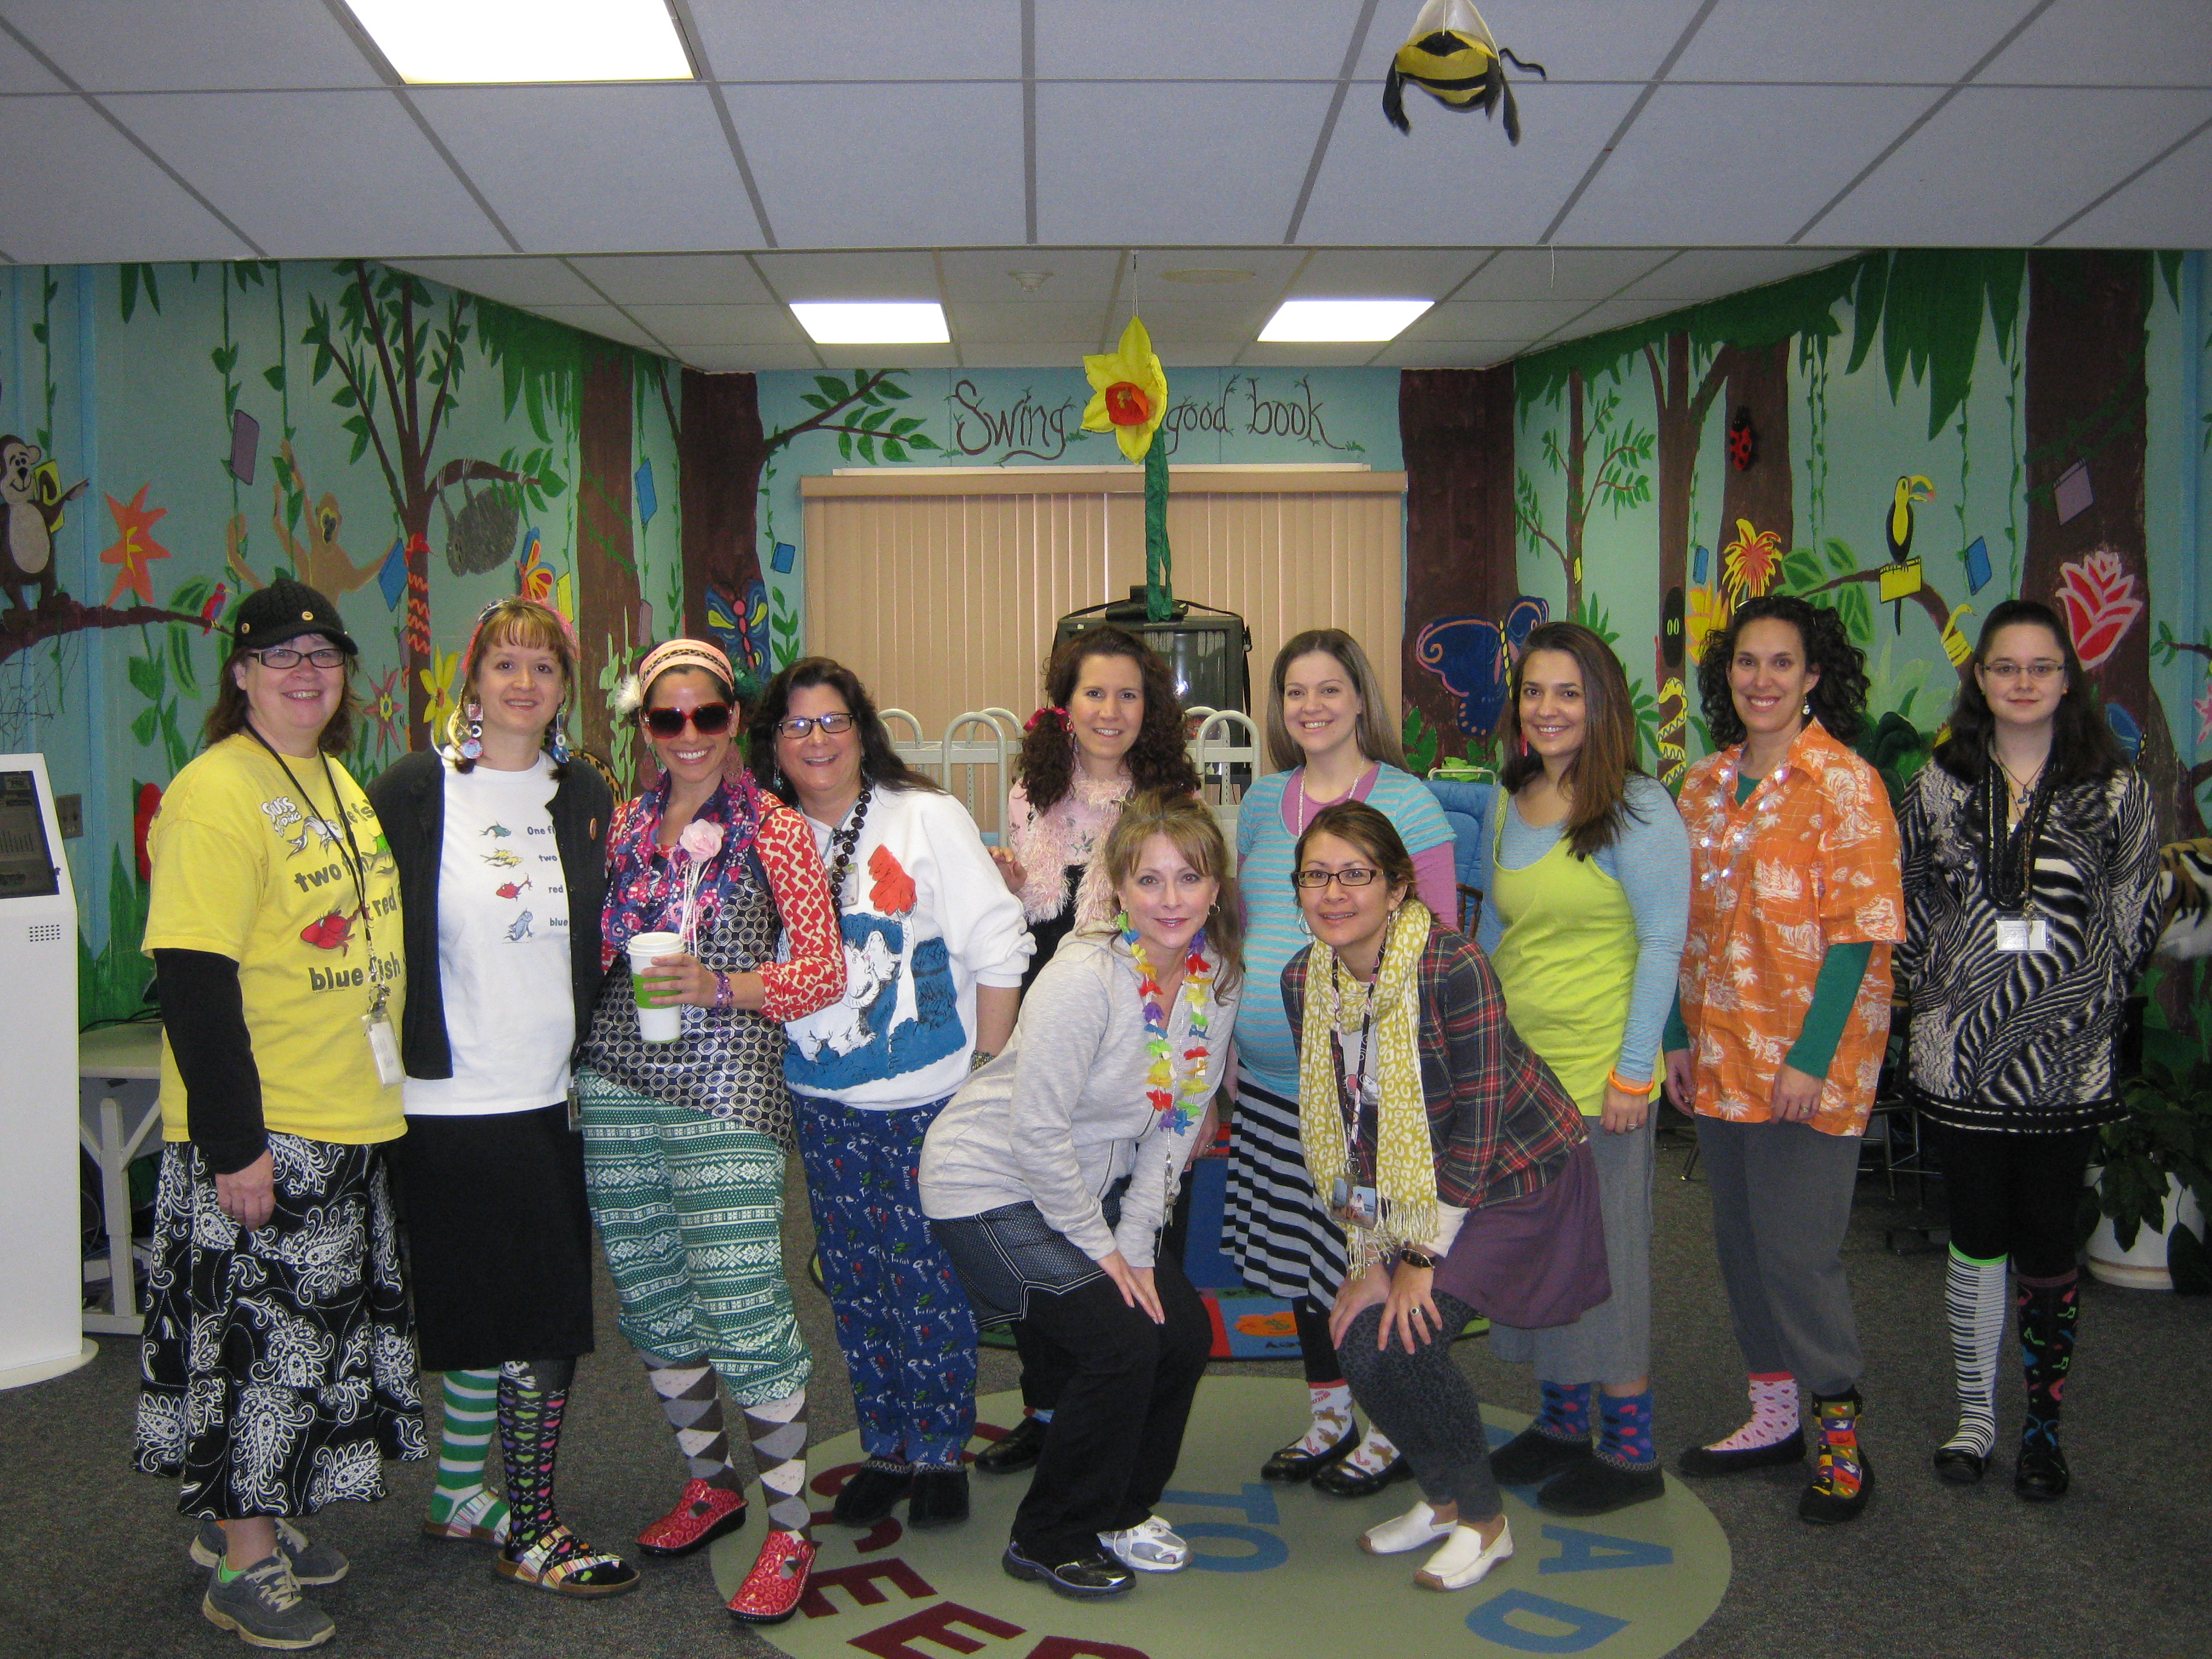 It's Wacky Wednesday dress up day for teachers too!